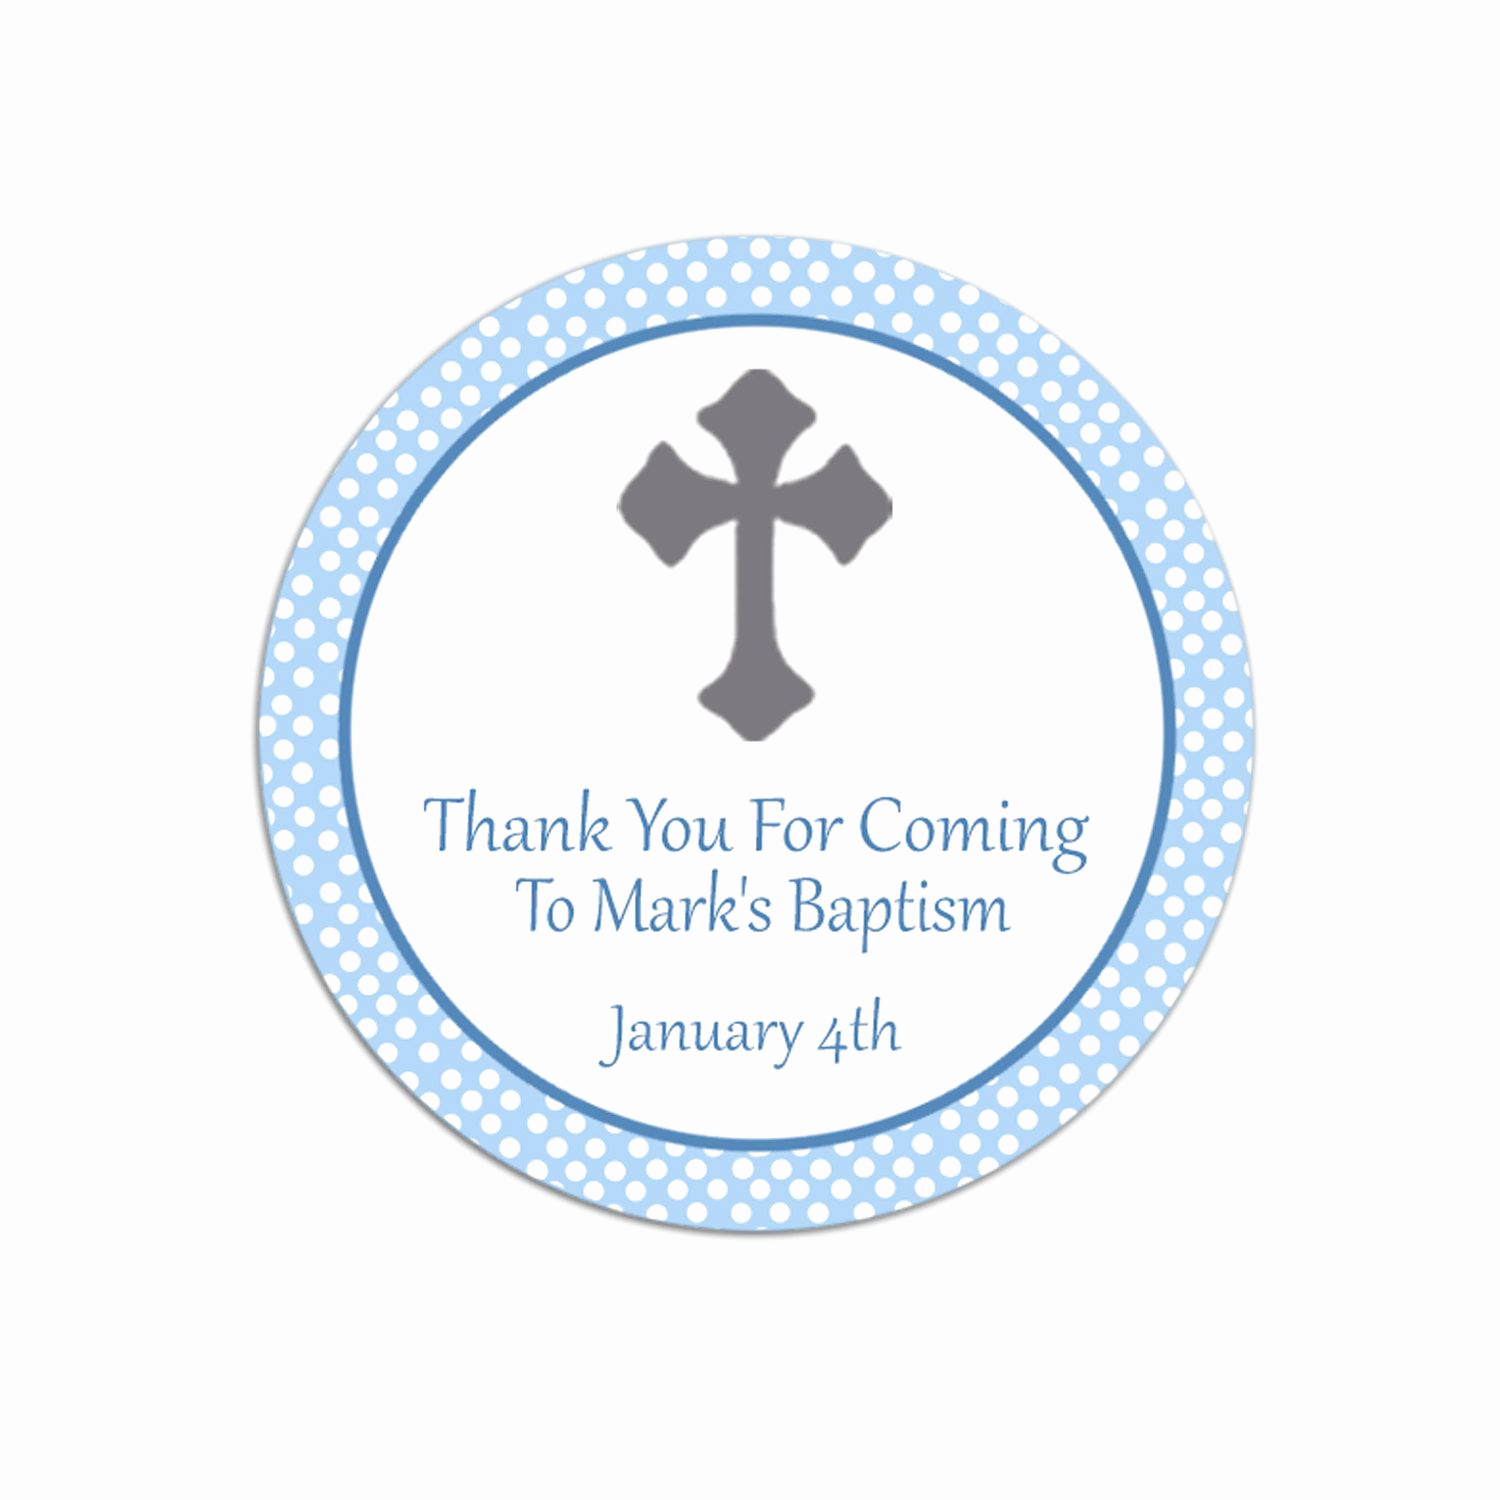 Thank You Tag Template Lovely Baptism Thank You Favor Tags Template Free